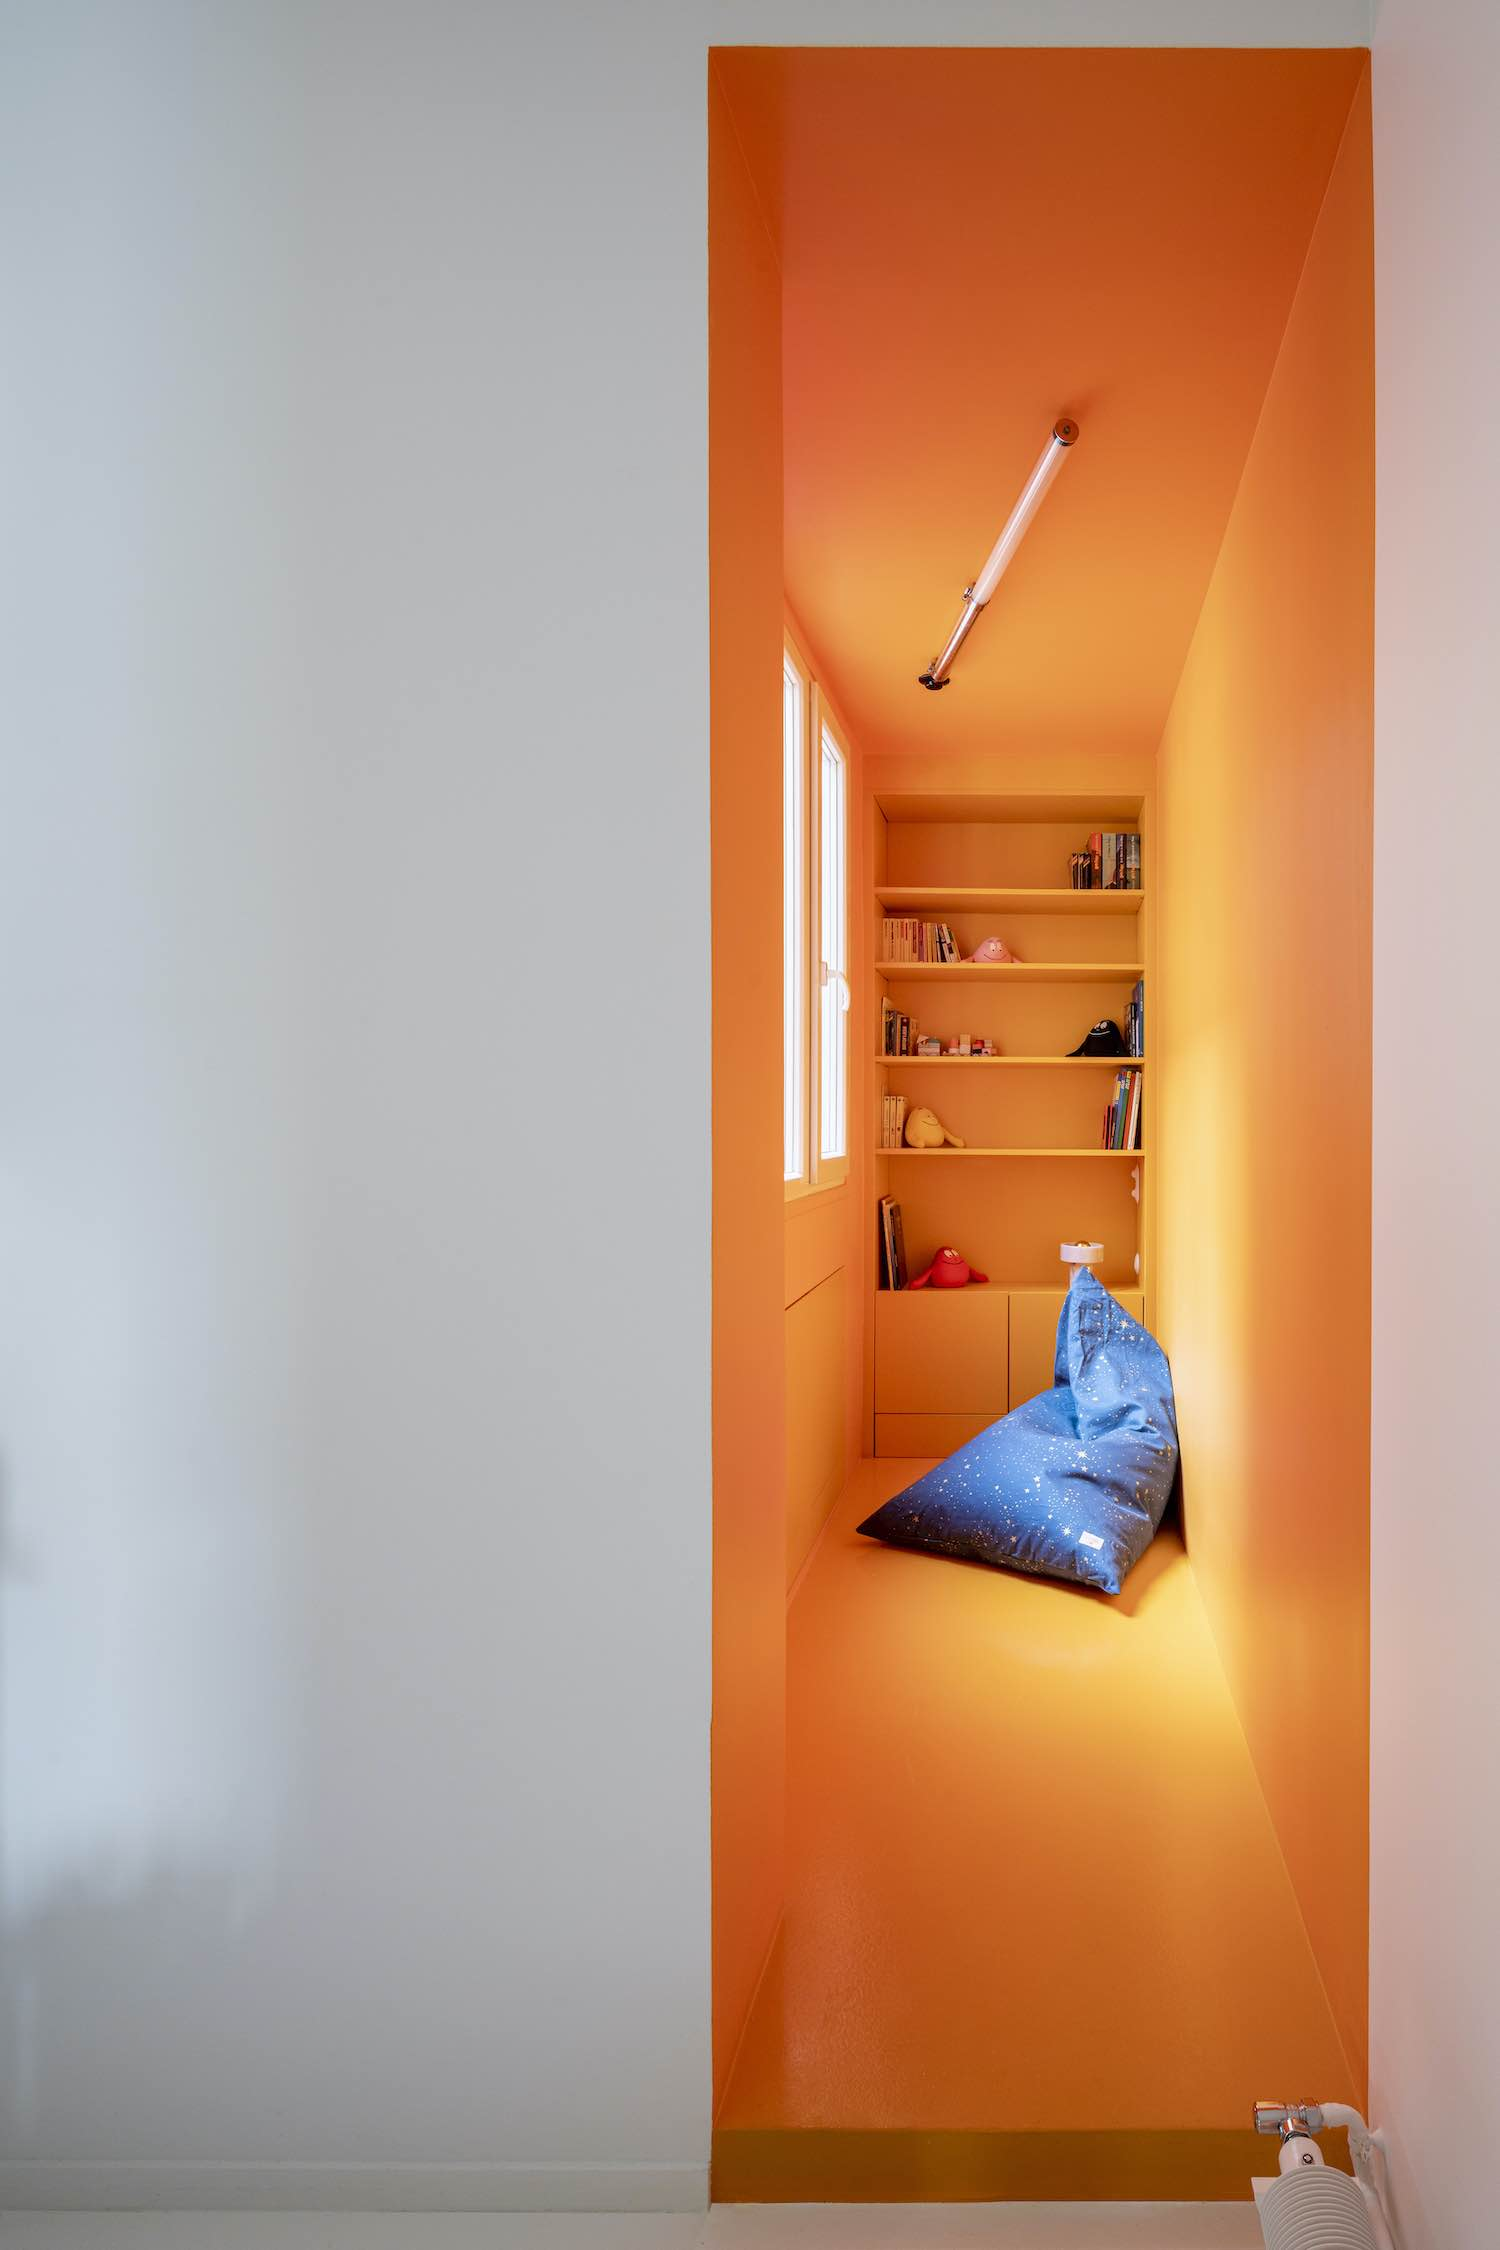 library located at the end of an orange wall corridor